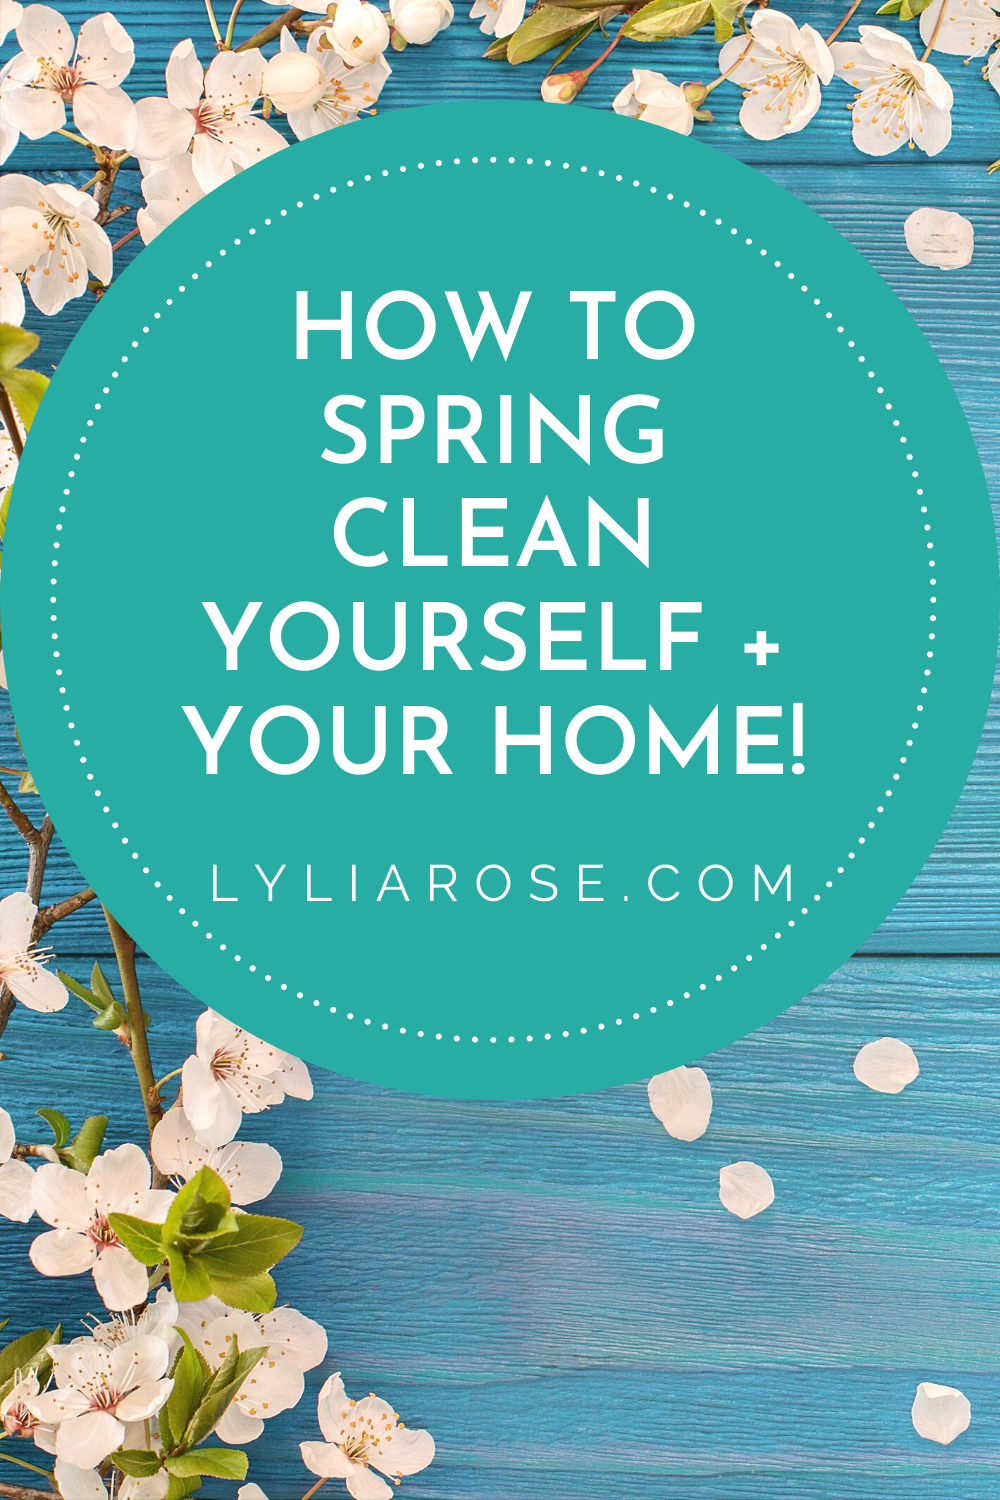 HOW TO Spring clean yourself + your home!